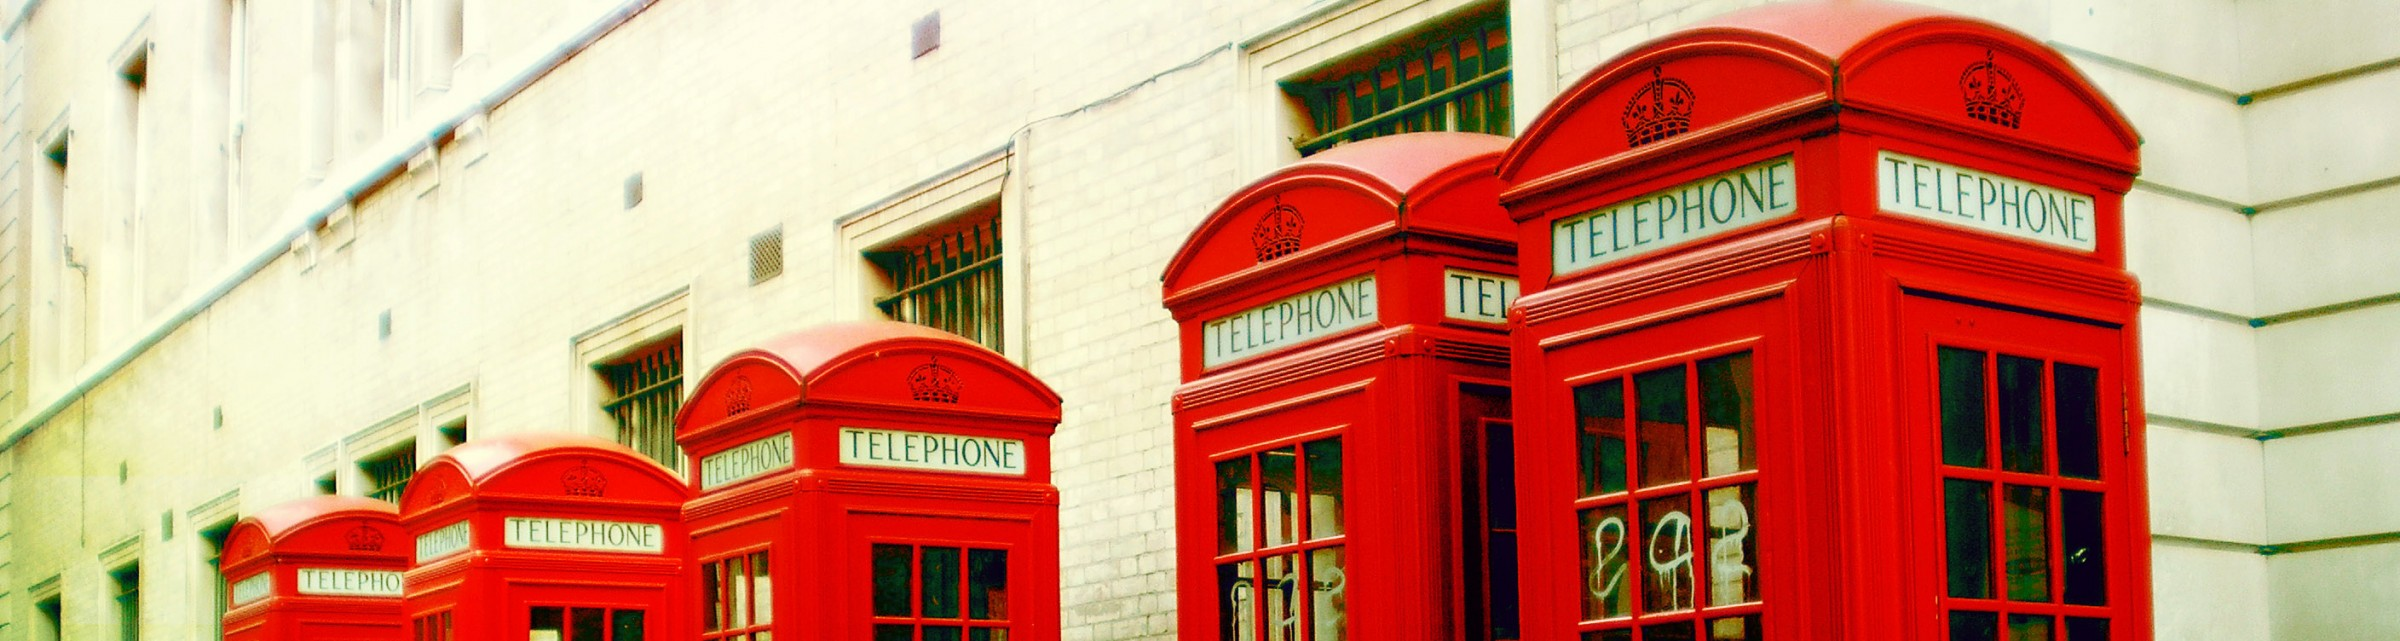 Red pillar boxes london